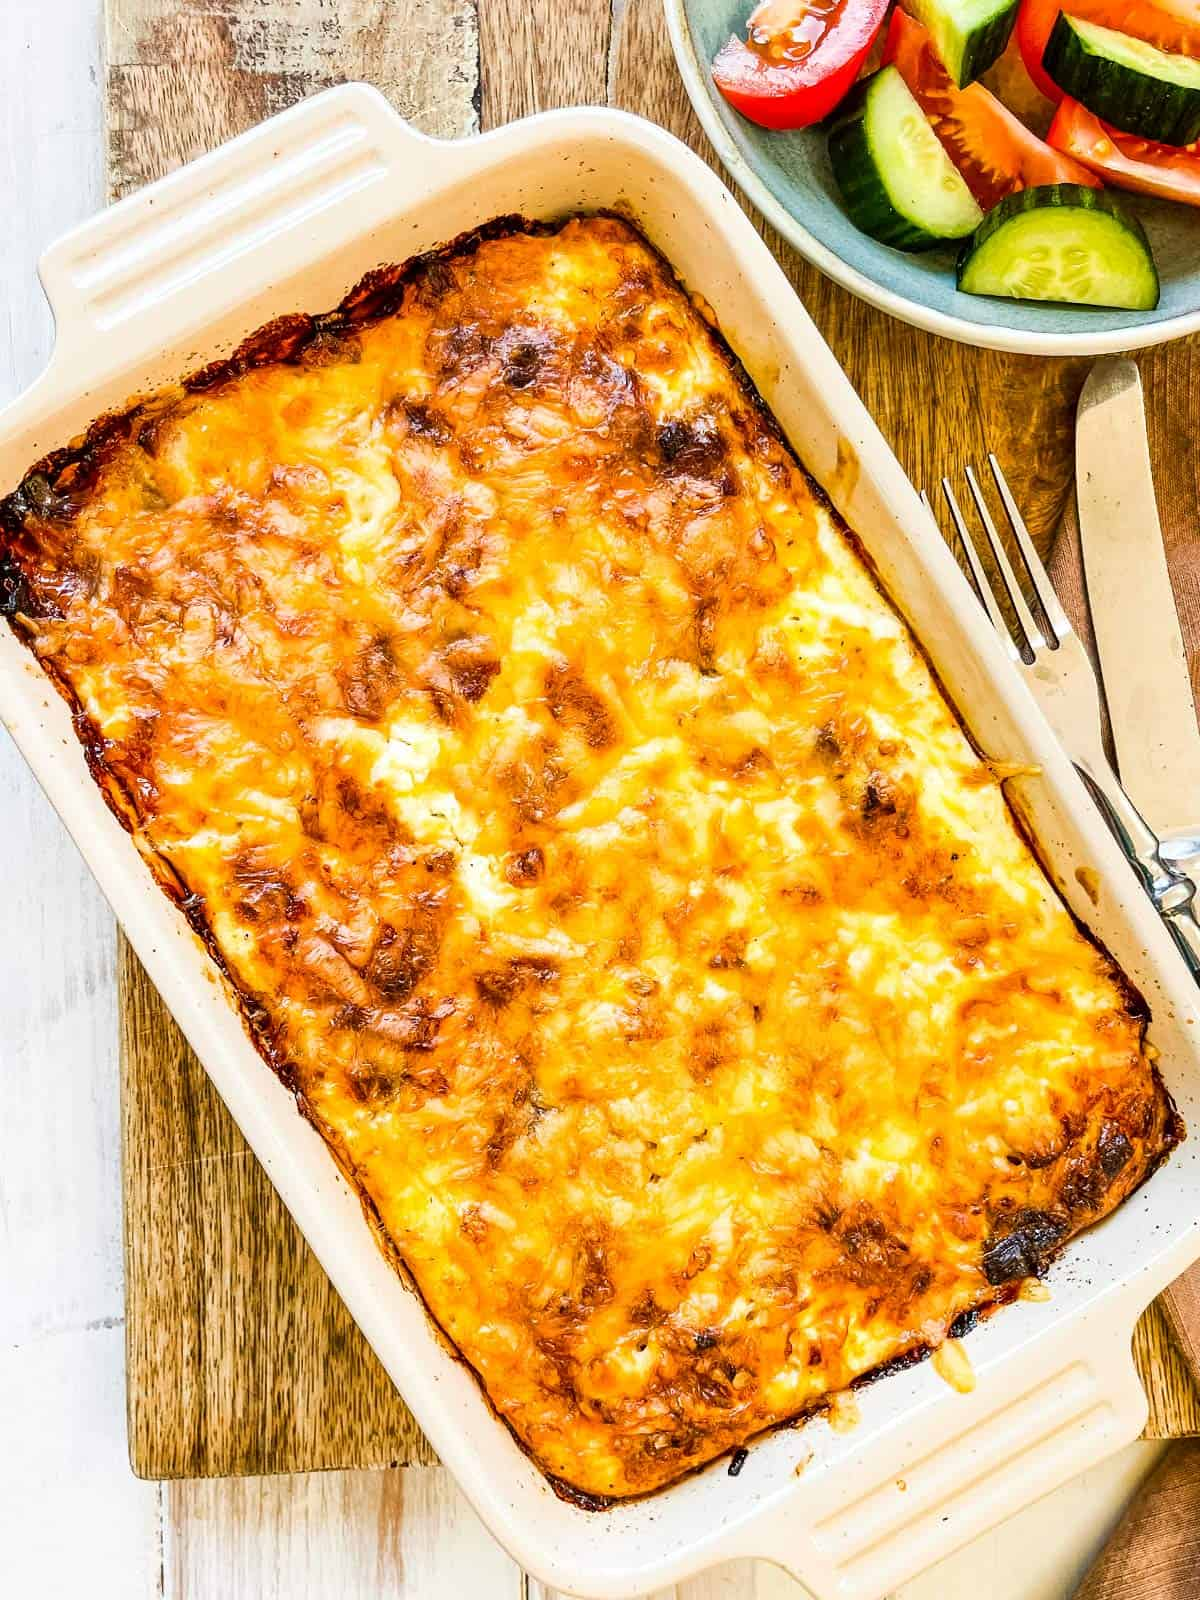 A baked casserole on a wooden board with a side dish on the side.